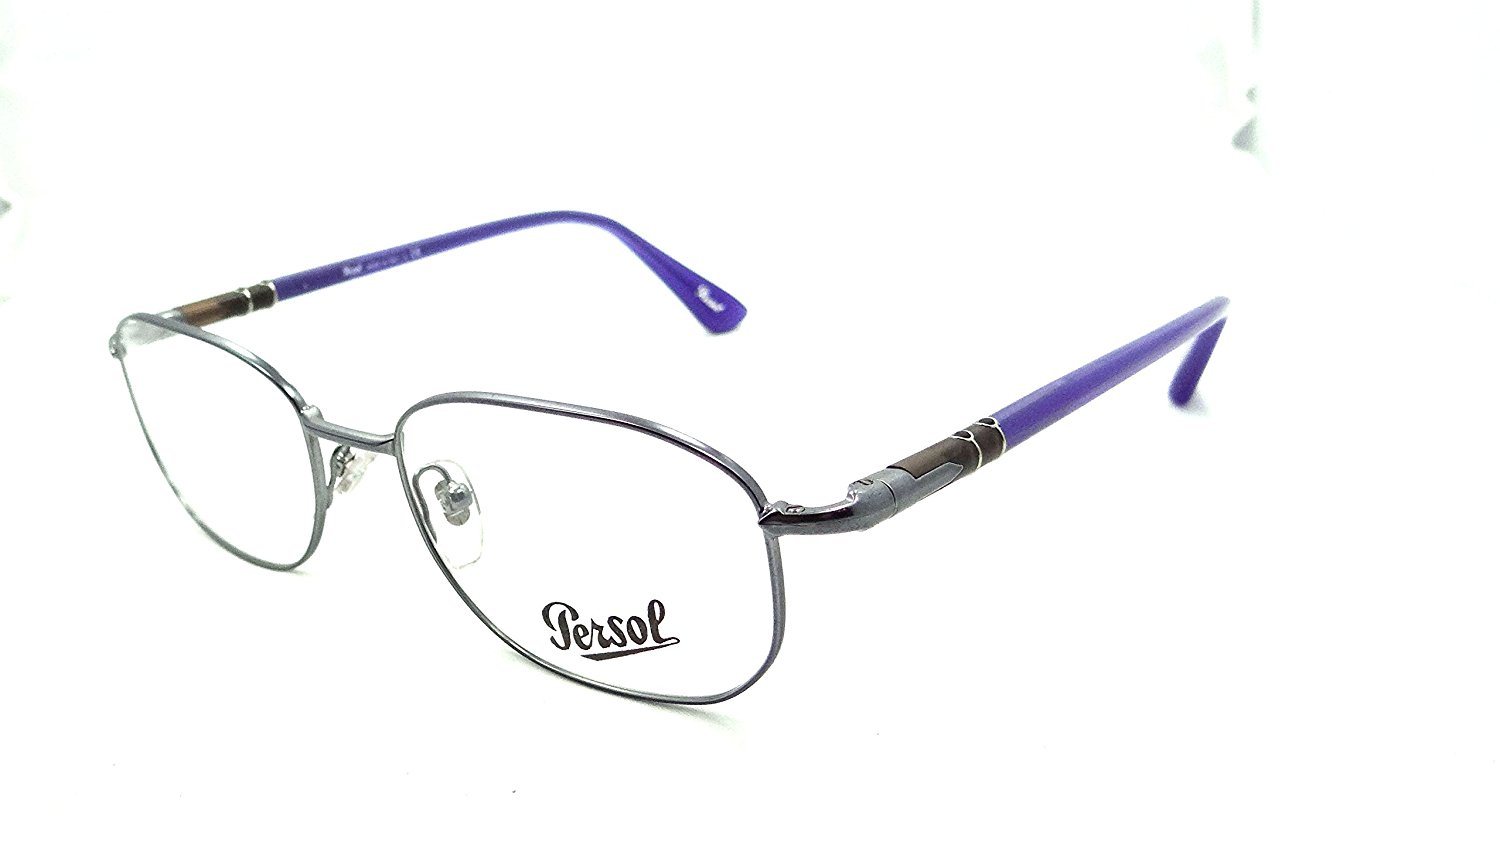 Persol Rx Eyeglasses Frames 2432 V 1057 51x18 Gunmetal with Blue Made in Italy